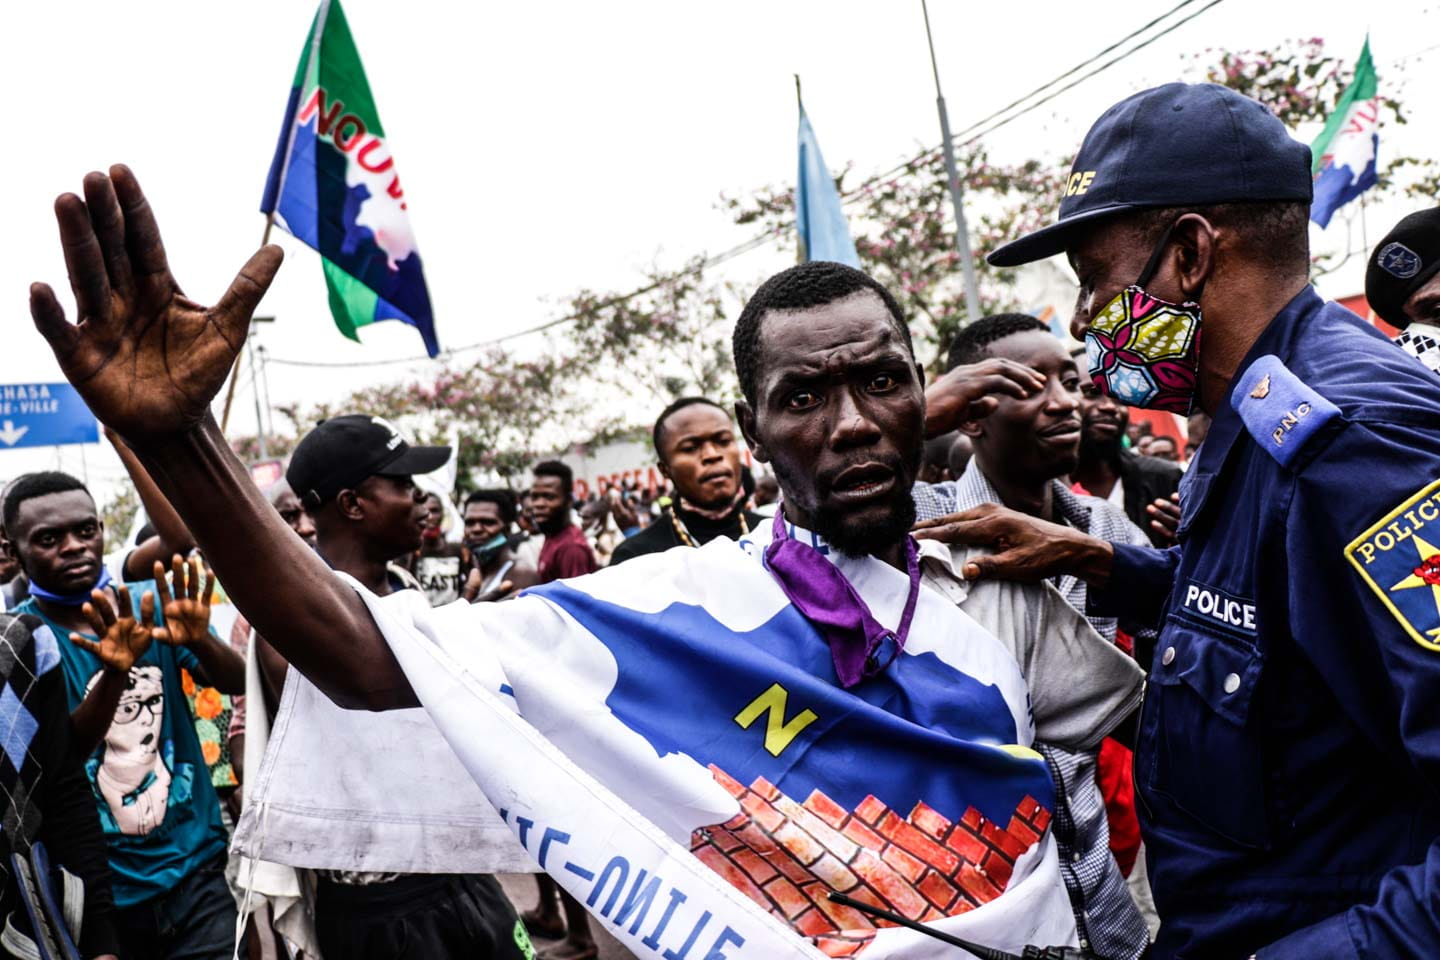 Kinshasa, DRC, August 23th 2020. Supporters of Lamuka opposition party leader Martin Fayulu on the streets of Kinshasa as he returned to Congo this week after being stuck in the United States for five months due to coronavirus travel restrictions. © Justin Makangara for Fondation Carmignac